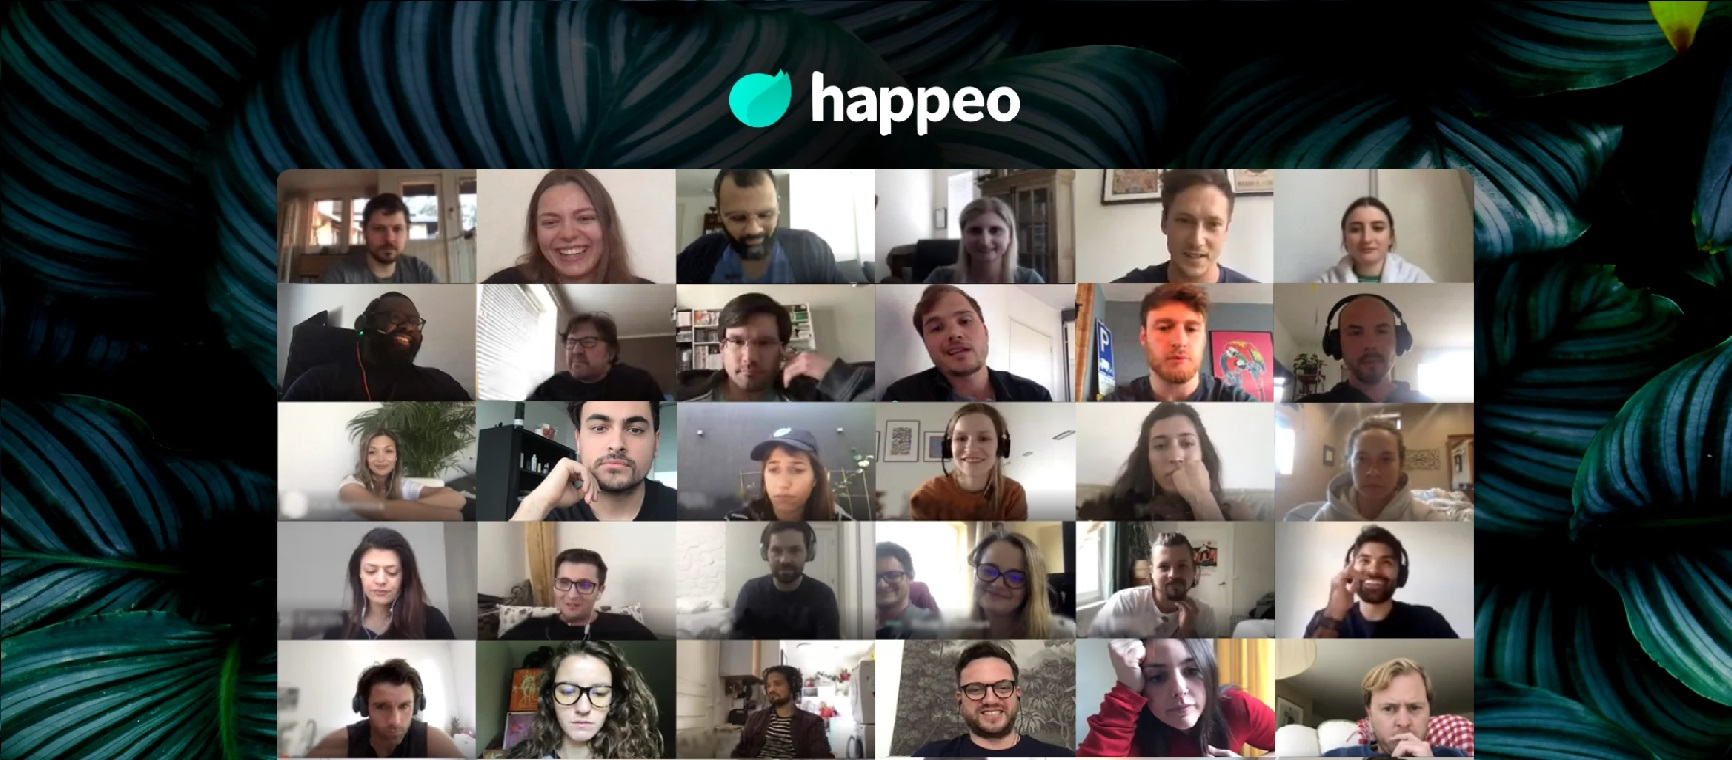 Happeo raises $12M in Series A funding to disrupt intranet industry